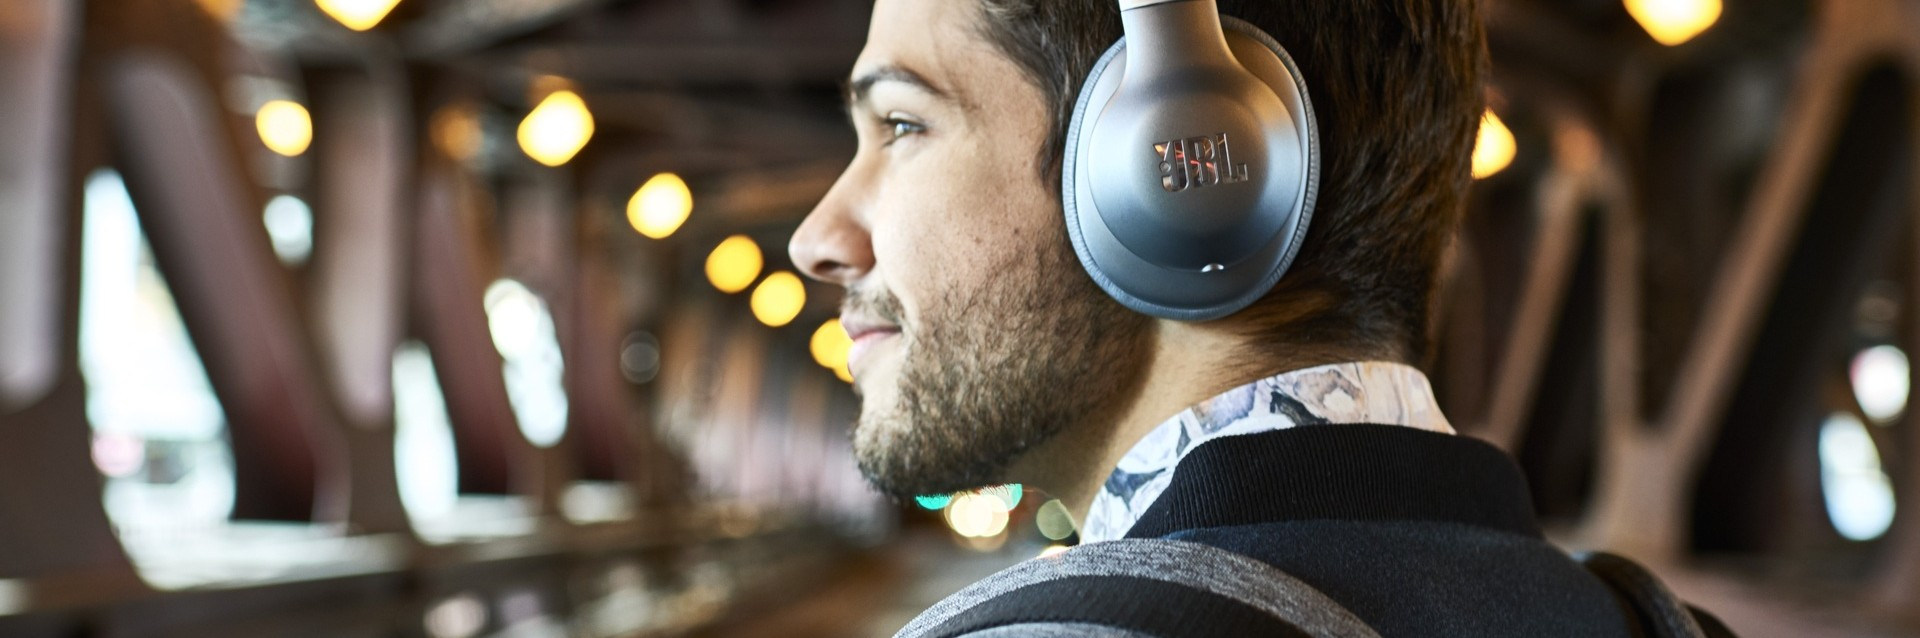 HARMAN IS GOING BIG AT SDC2017– JBL HEADSET HACK TABLE, OVER-THE-AIR UPDATES AND TIZEN